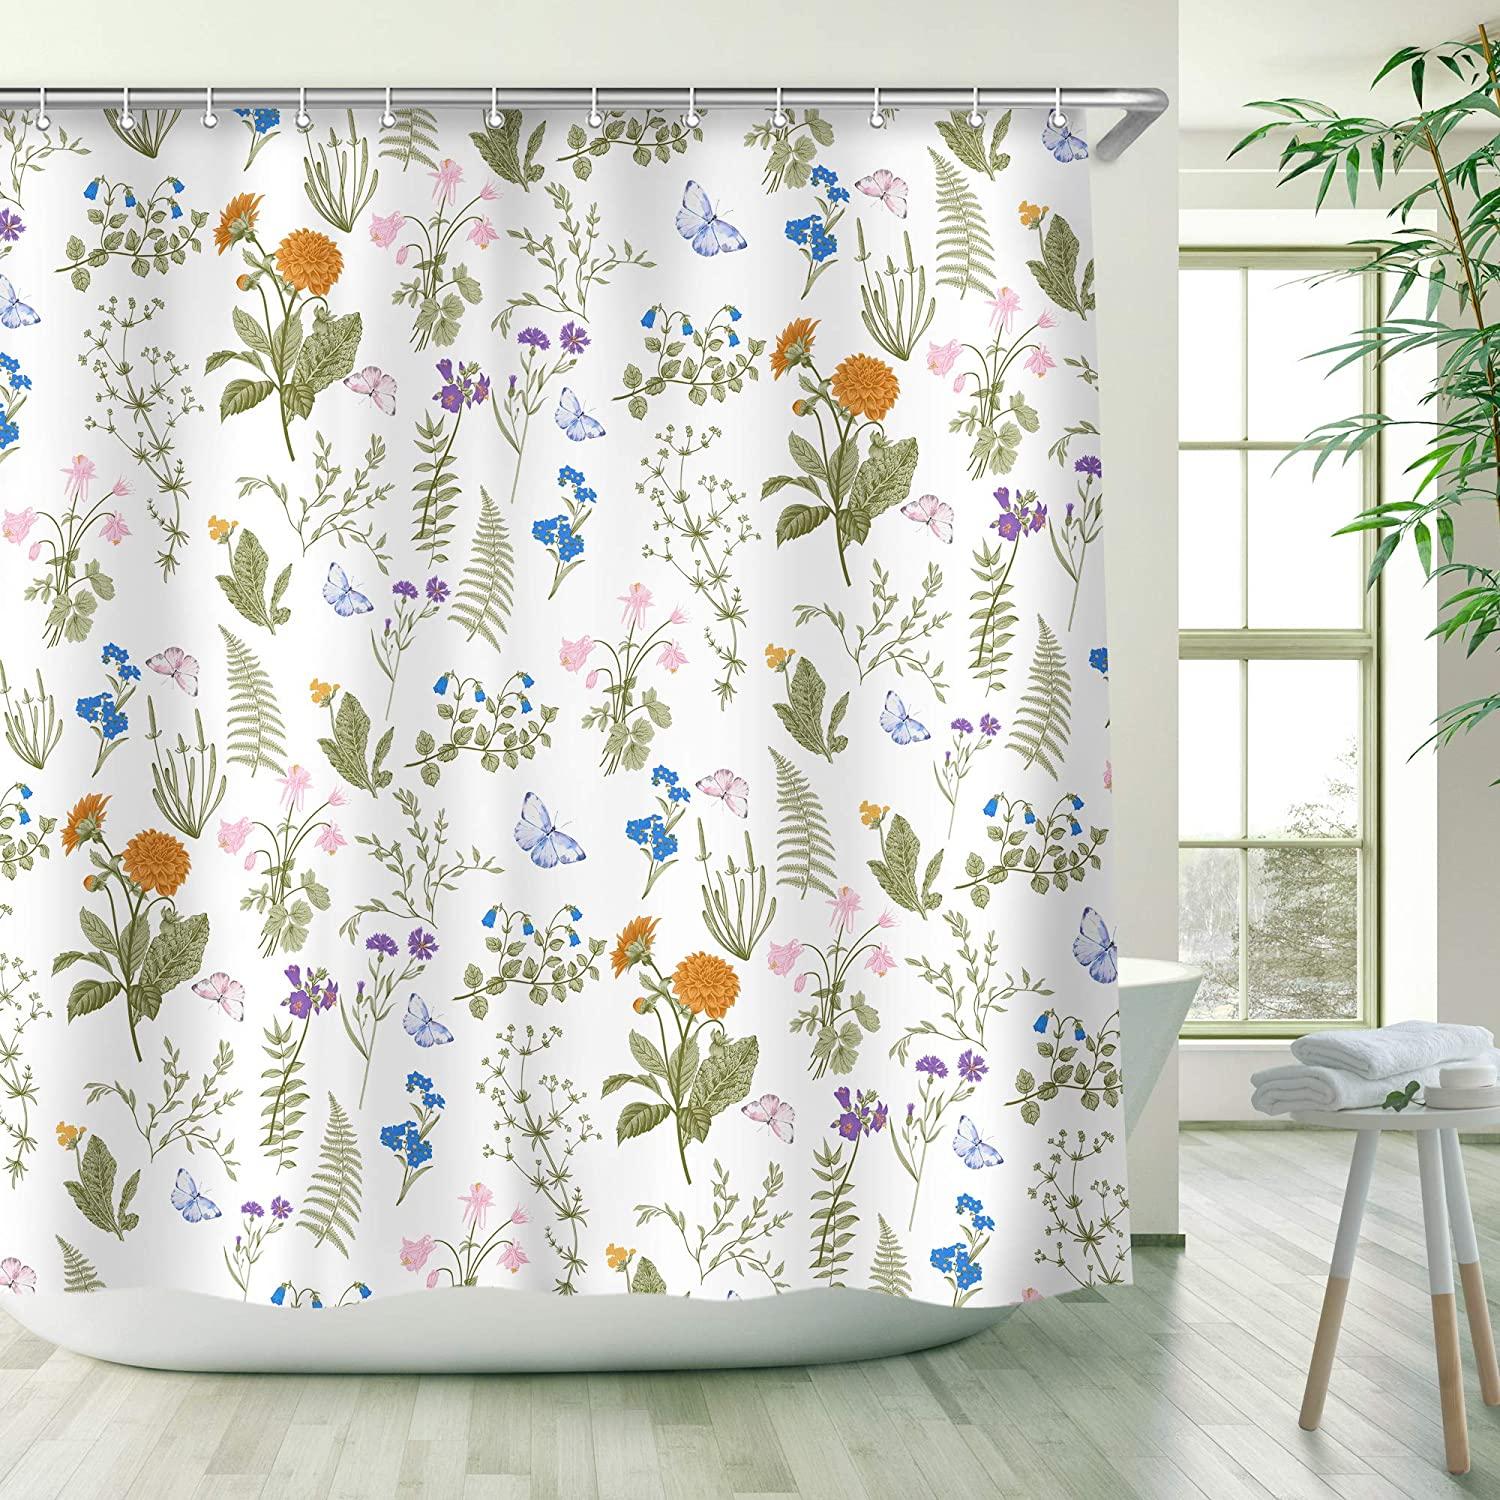 Green Leaves Shower Curtain, Floral Shower Curtain Set with Hooks,Waterproof, Decorative Bath Curtain 72